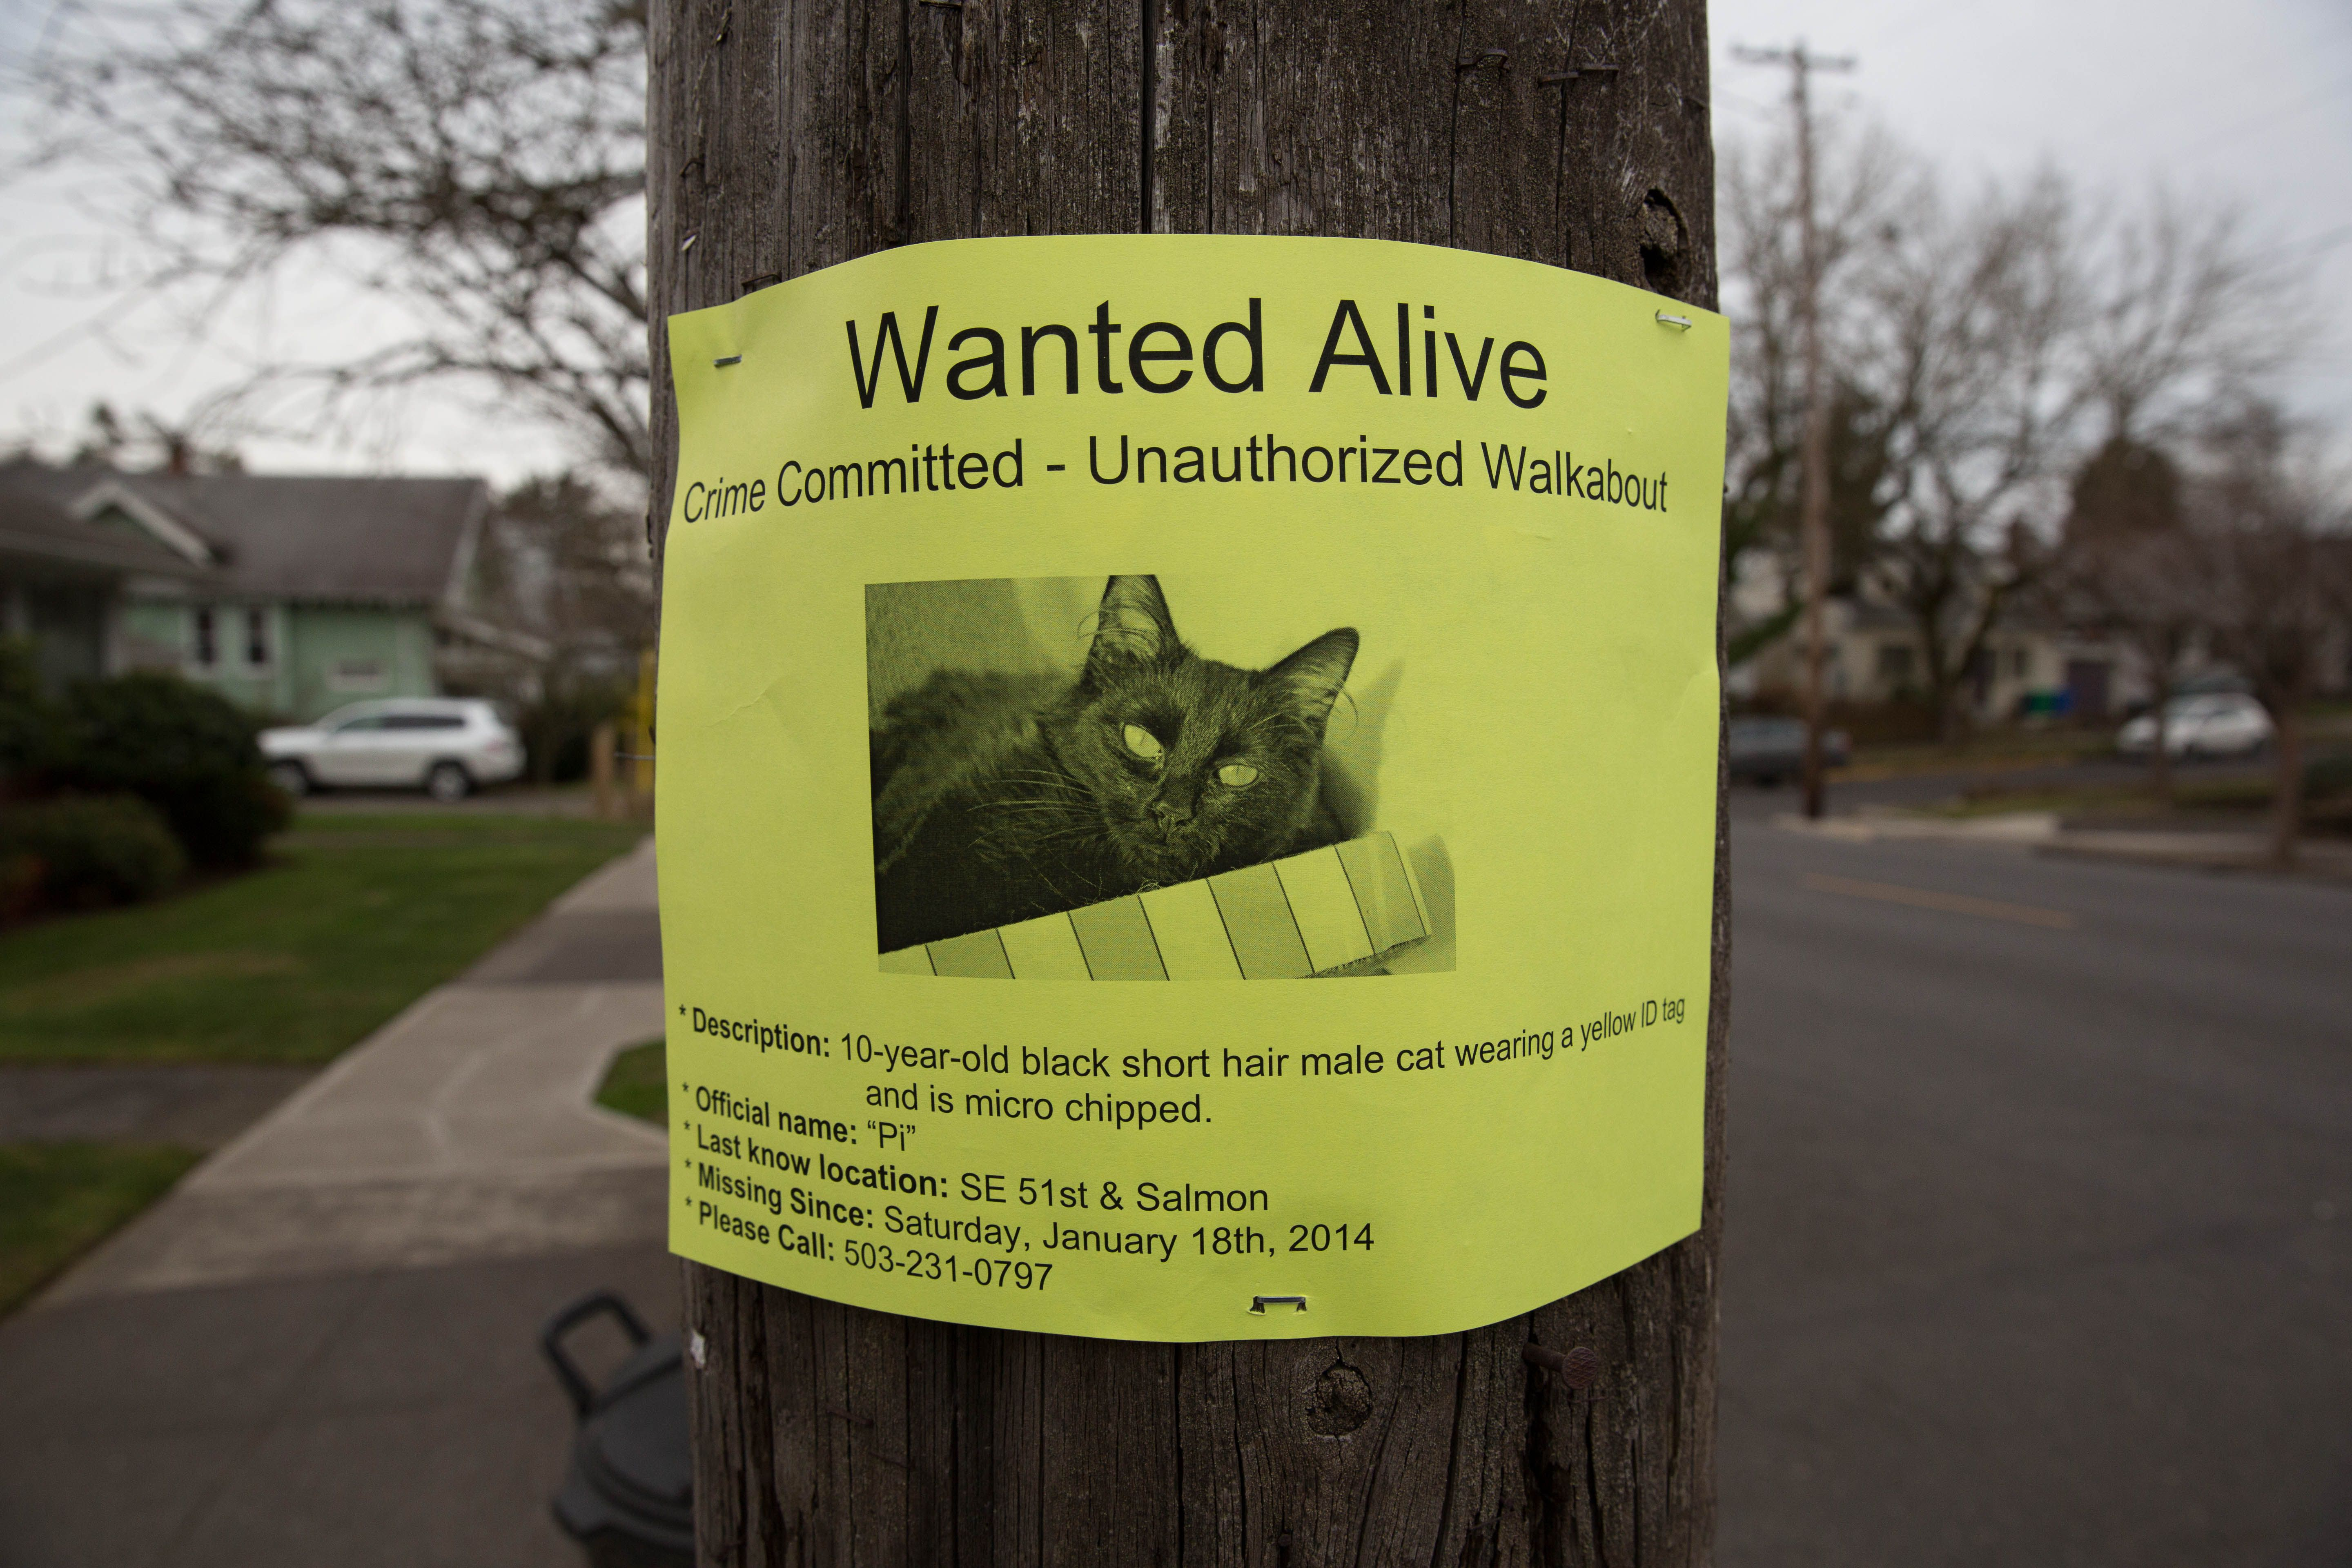 Lost cat poster on telephone pole